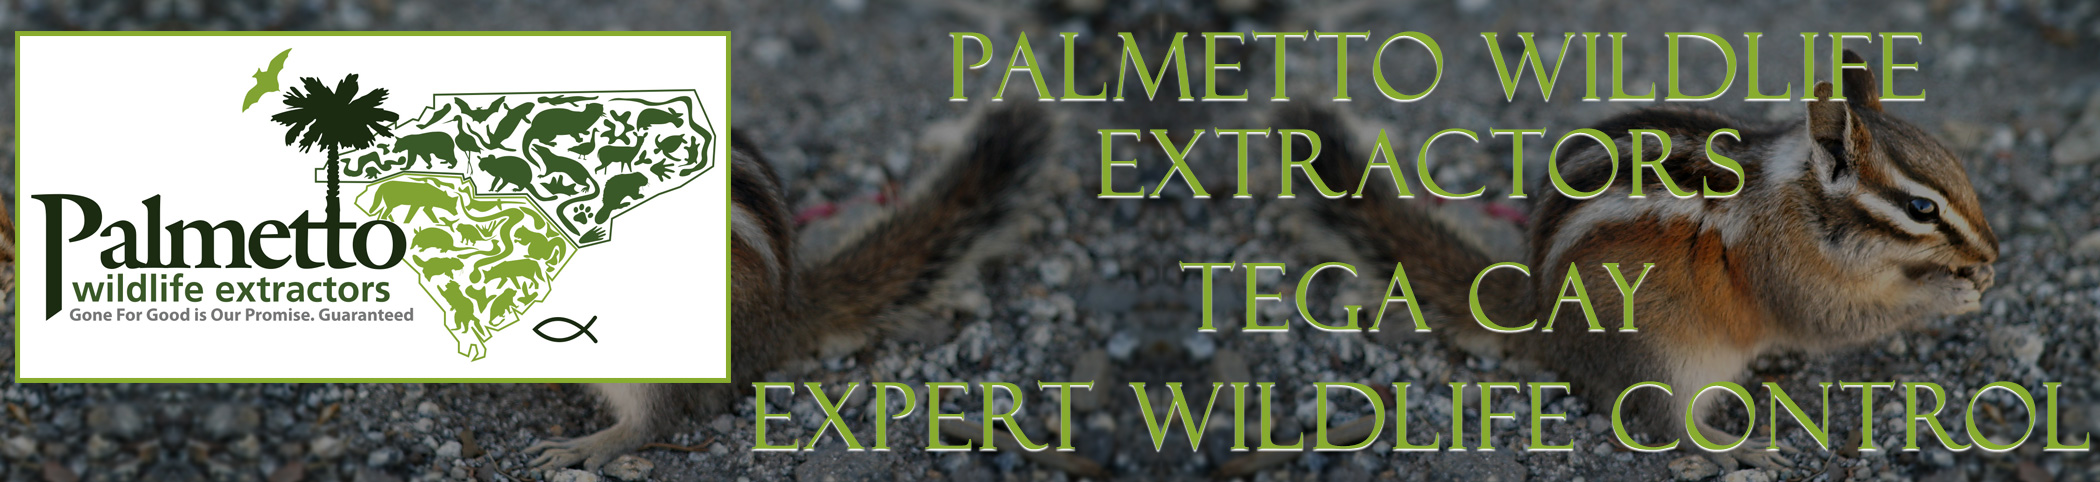 Palmetto Wildlife Extractors Tega Cay South Carolina header image